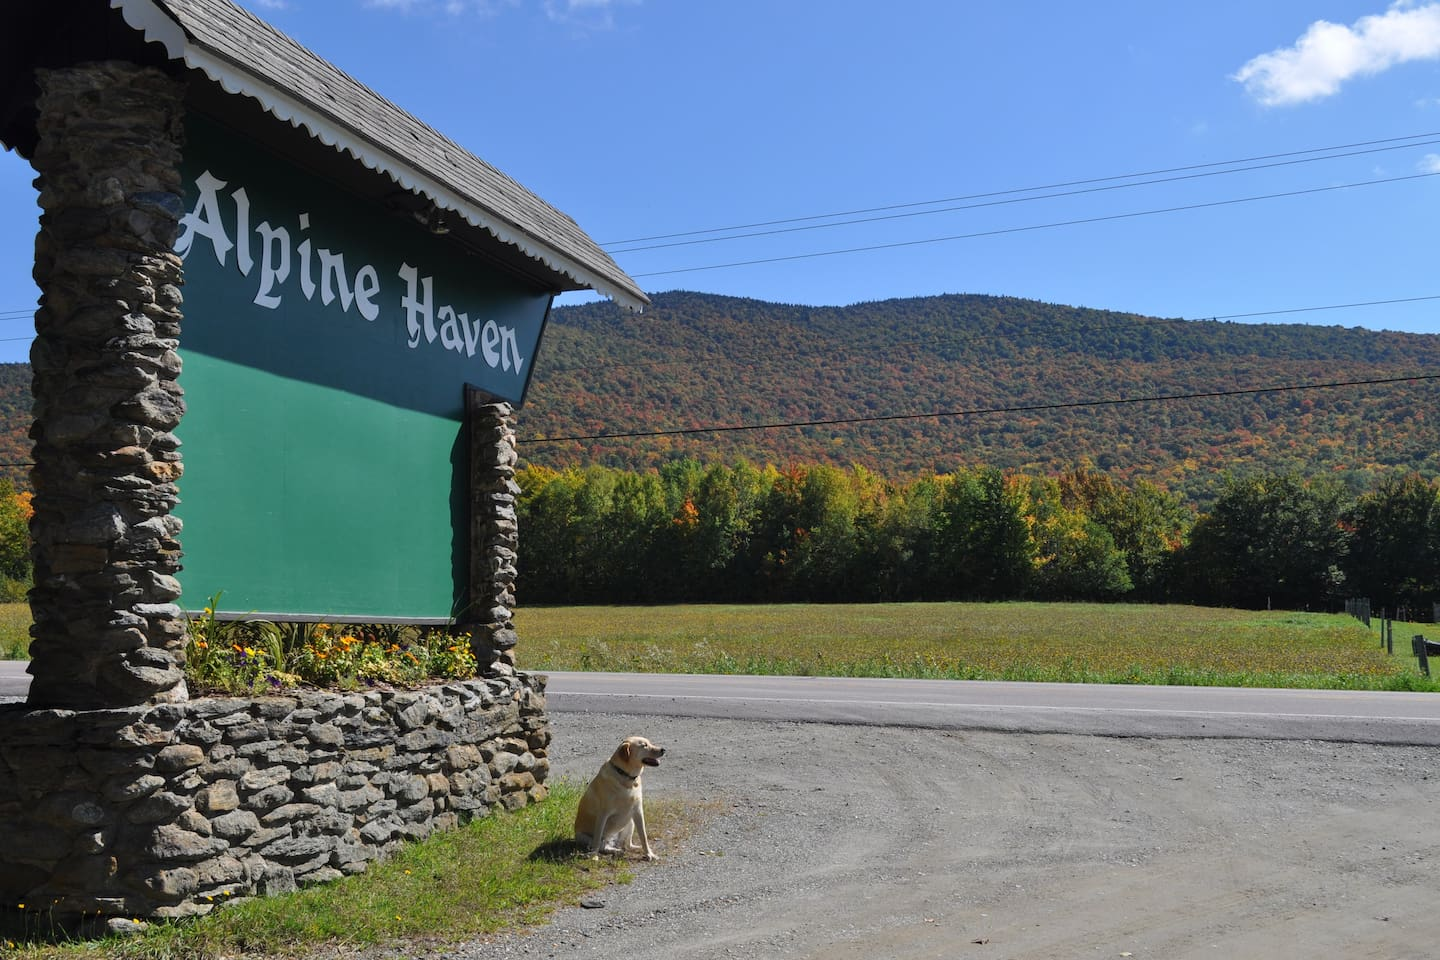 The Alpine Haven sign with the fall foliage at its full glory in the background.